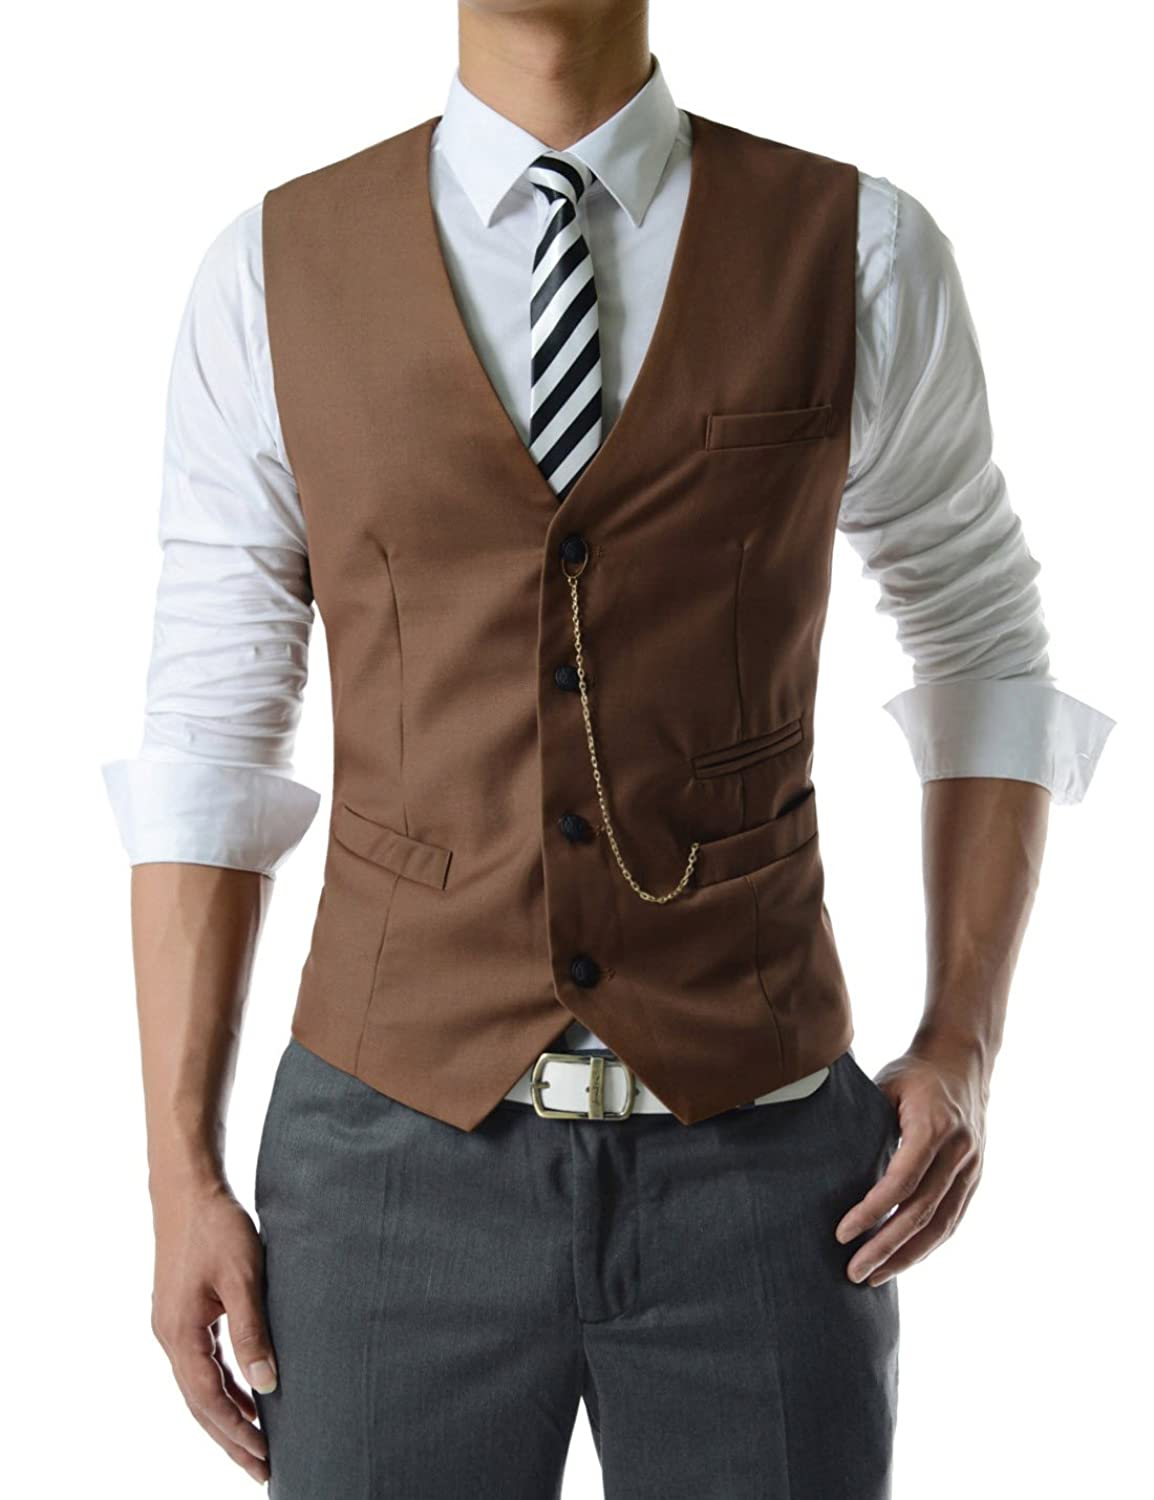 1920s Style Mens Vests SVE TheLees Mens slim fit chain point 3 button vest $33.99 AT vintagedancer.com